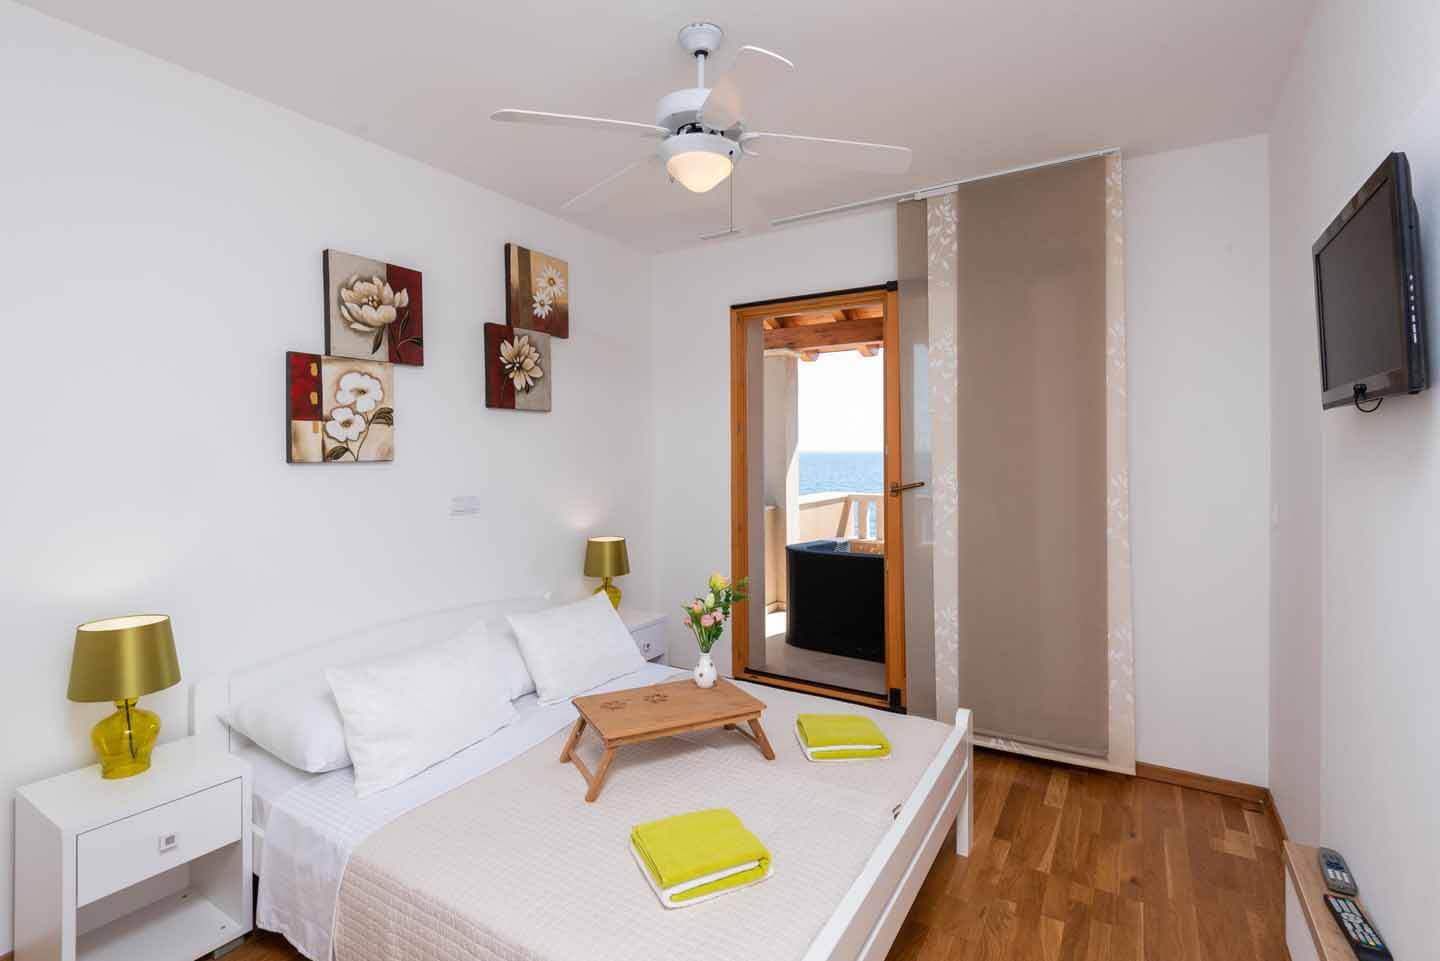 Double bedroom with sea view and direct balcony access three